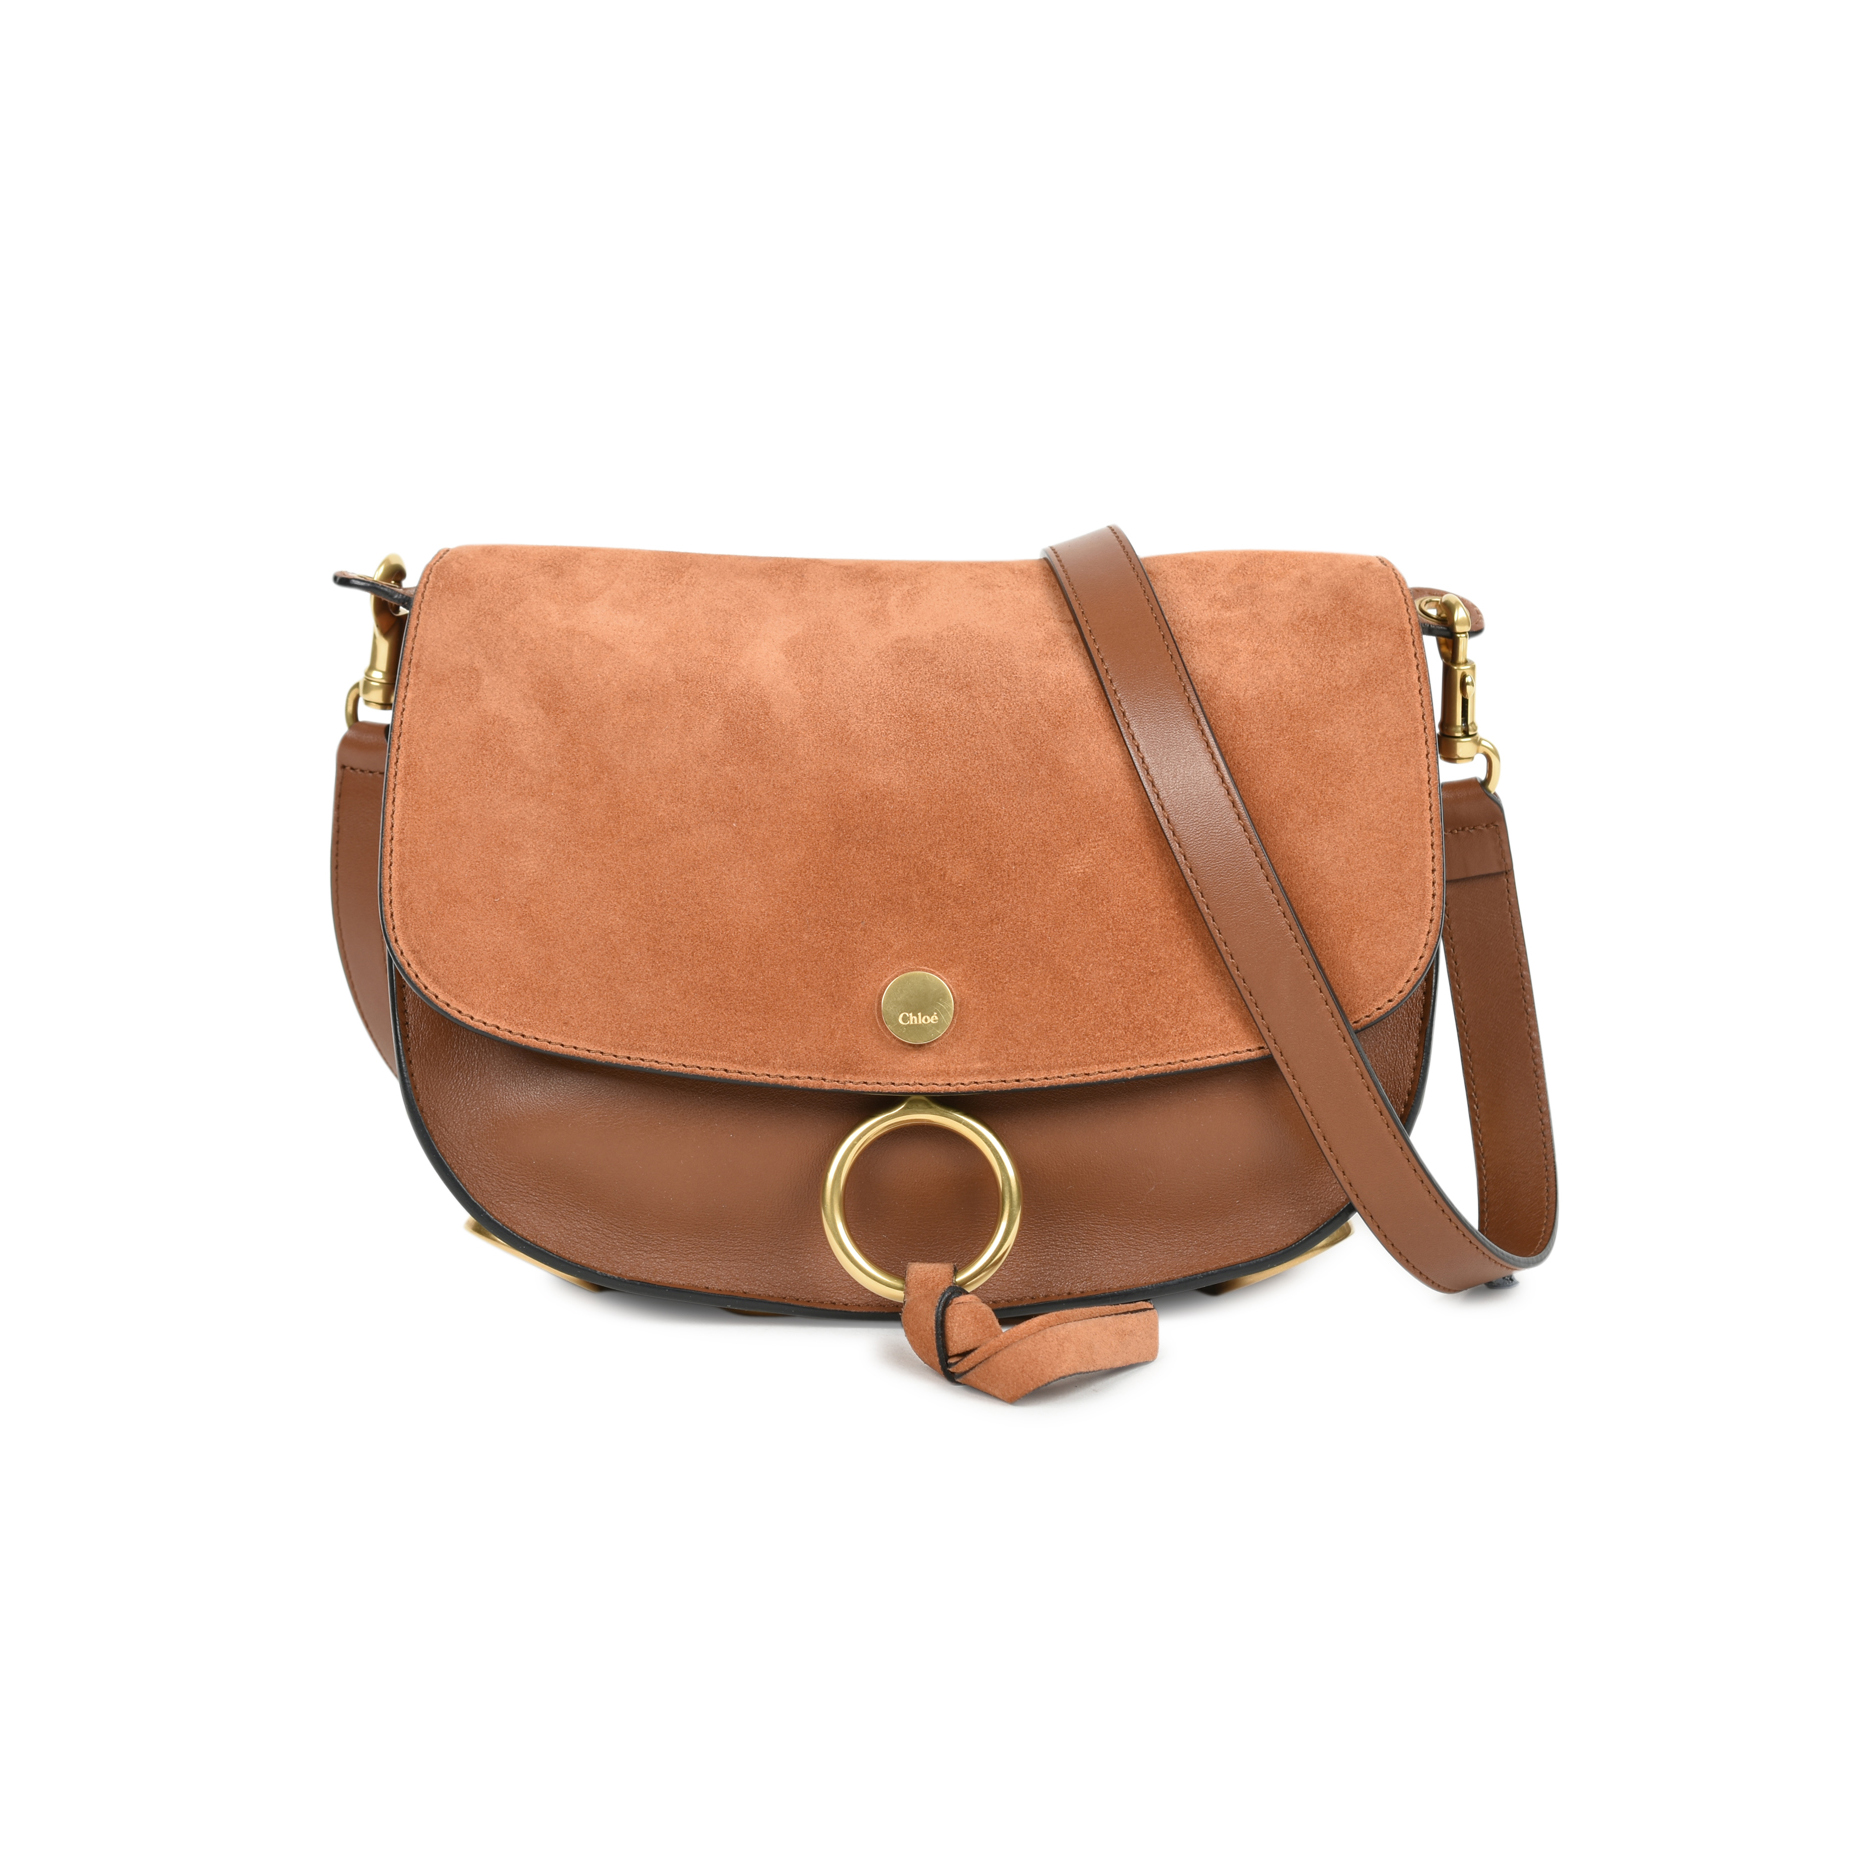 1207844baa1ae Authentic Second Hand Chloé Kurtis Shoulder Bag (PSS-470-00043) - THE FIFTH  COLLECTION